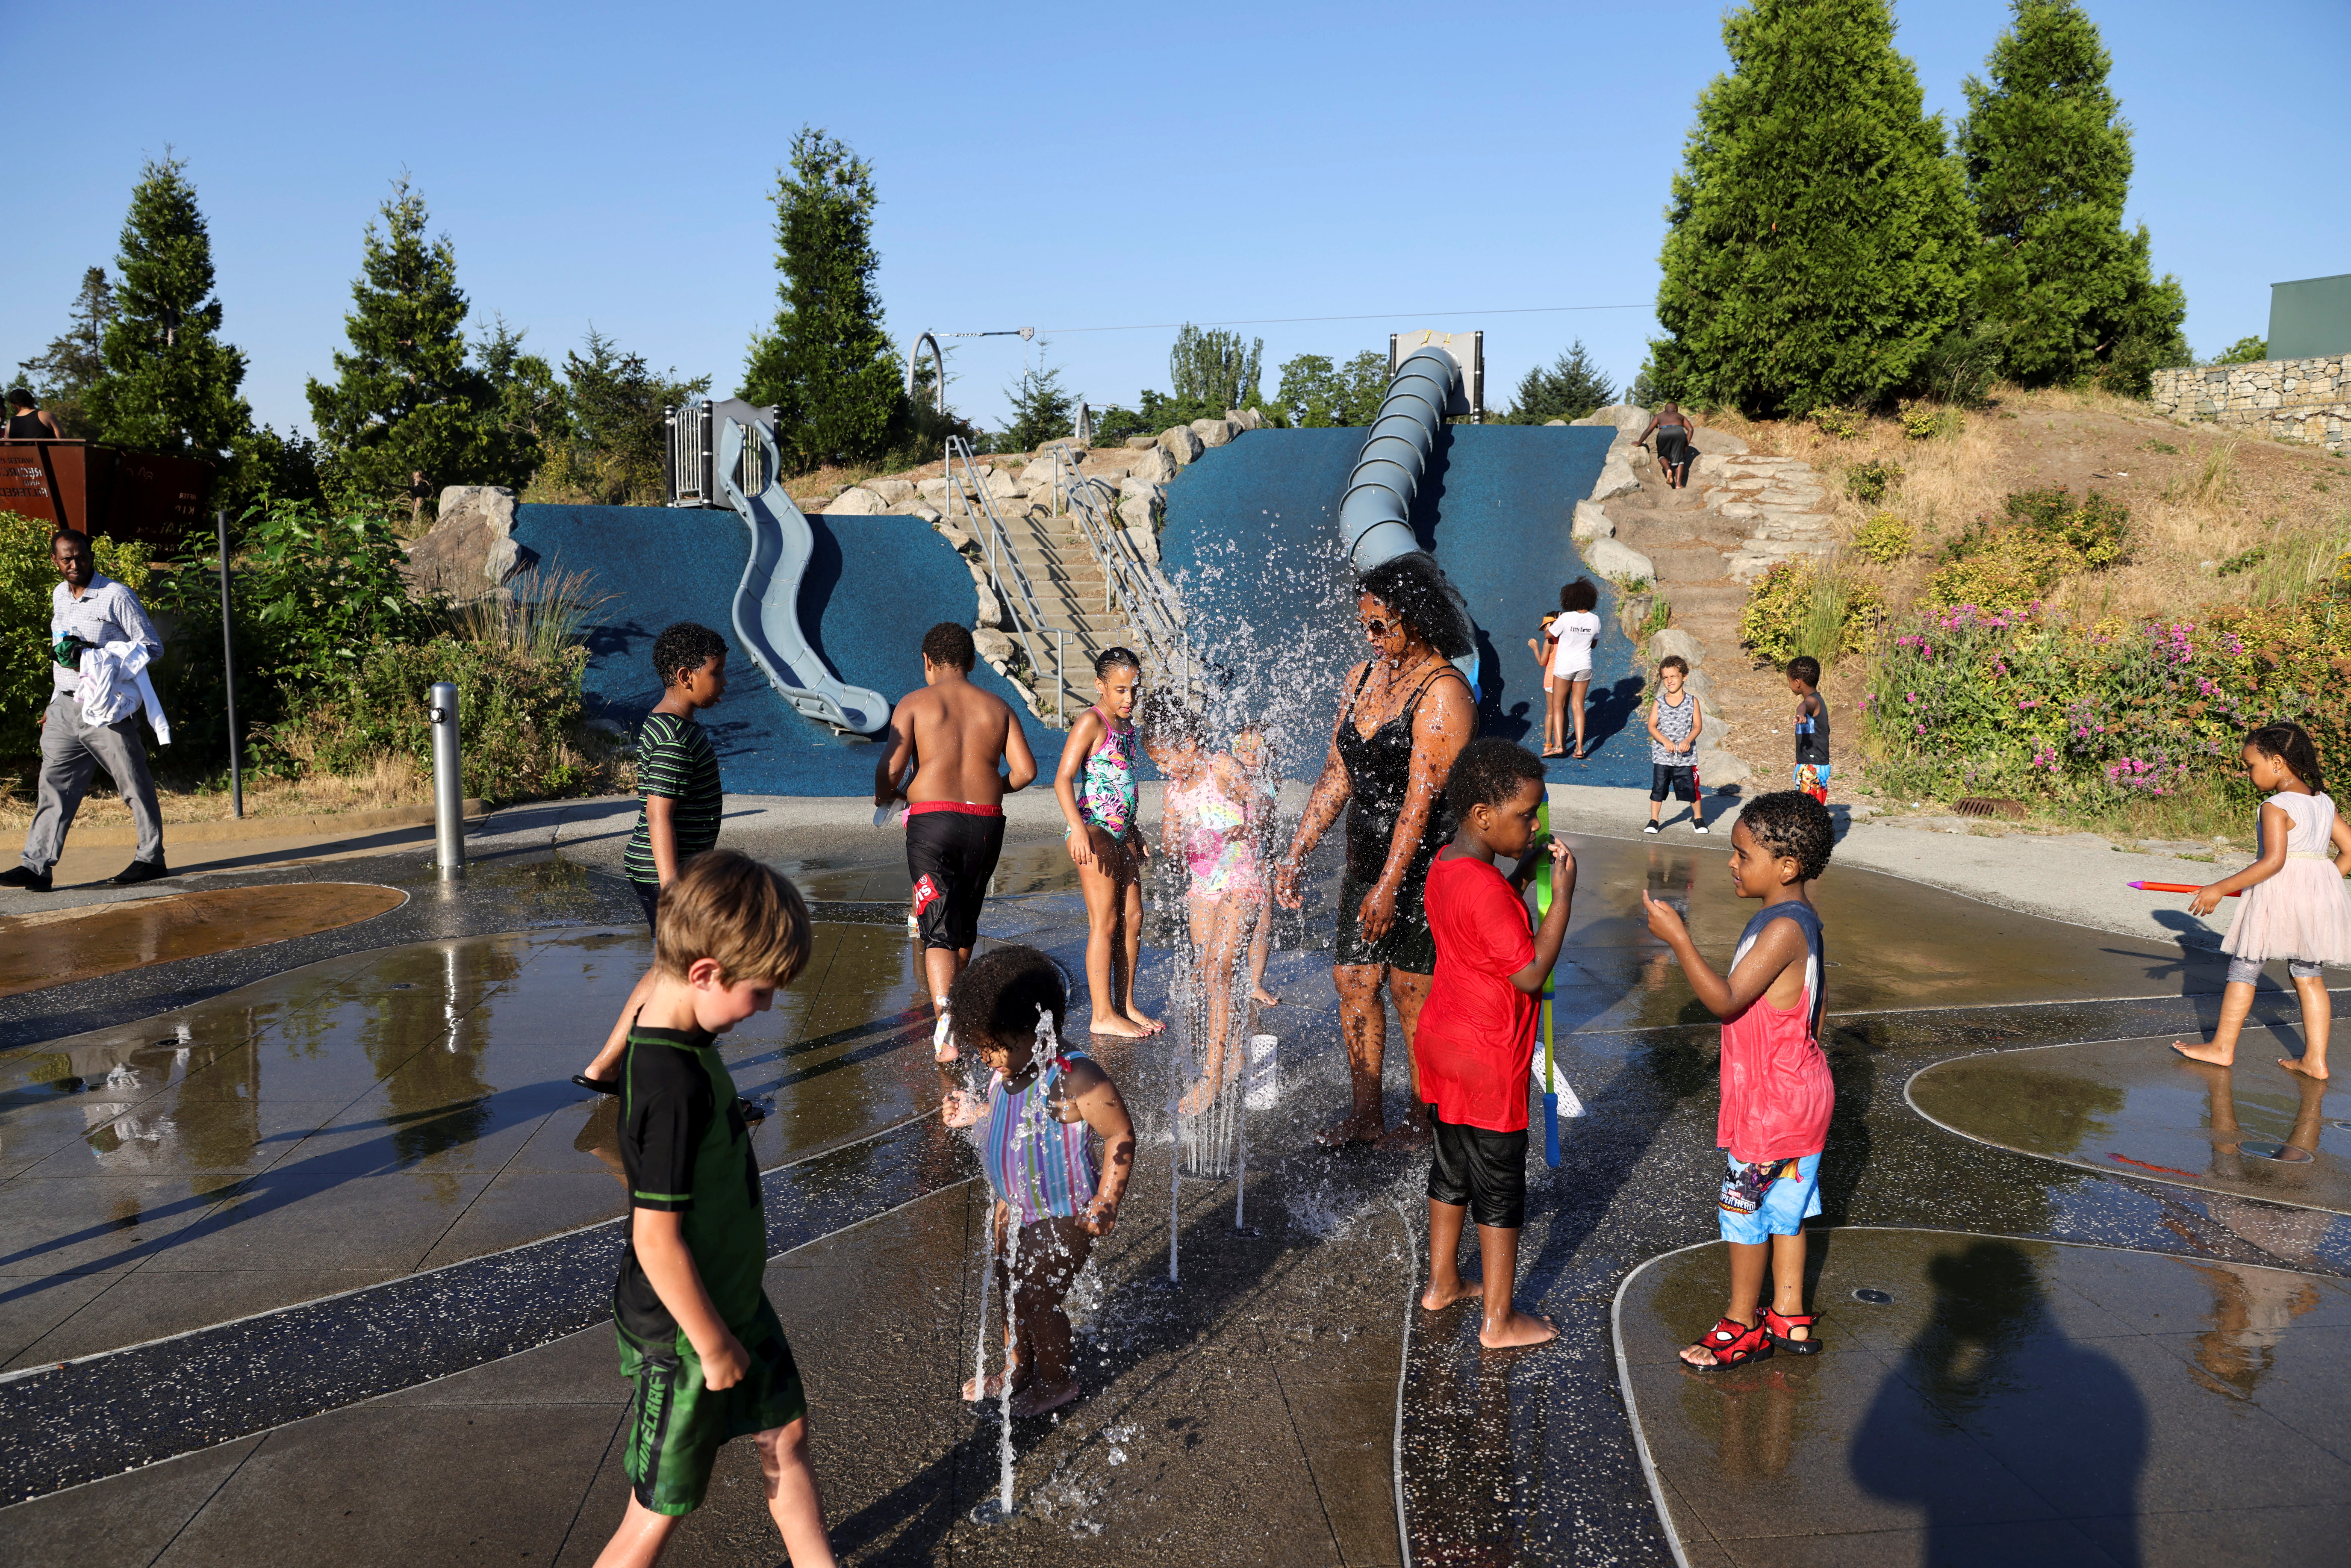 Adults and kids play in a spray park at Jefferson Park during a heat wave in Seattle, Washington, U.S., June 27, 2021. REUTERS/Karen Ducey